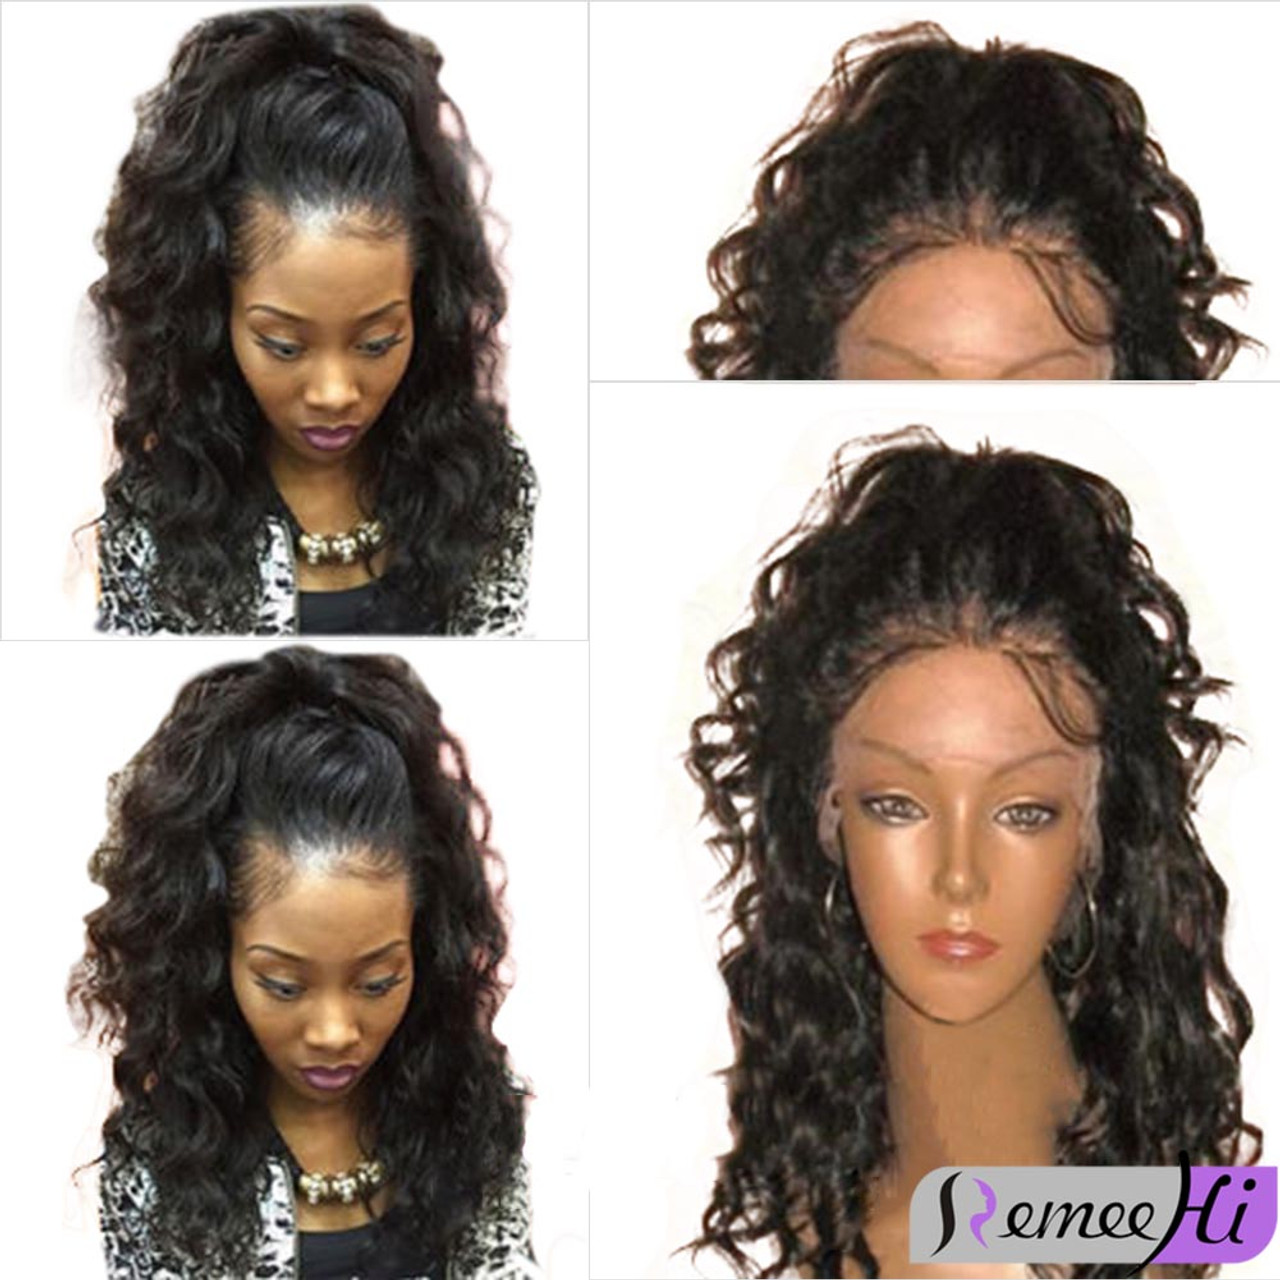 Remeehi 100% Indian Remy Human Hair Body